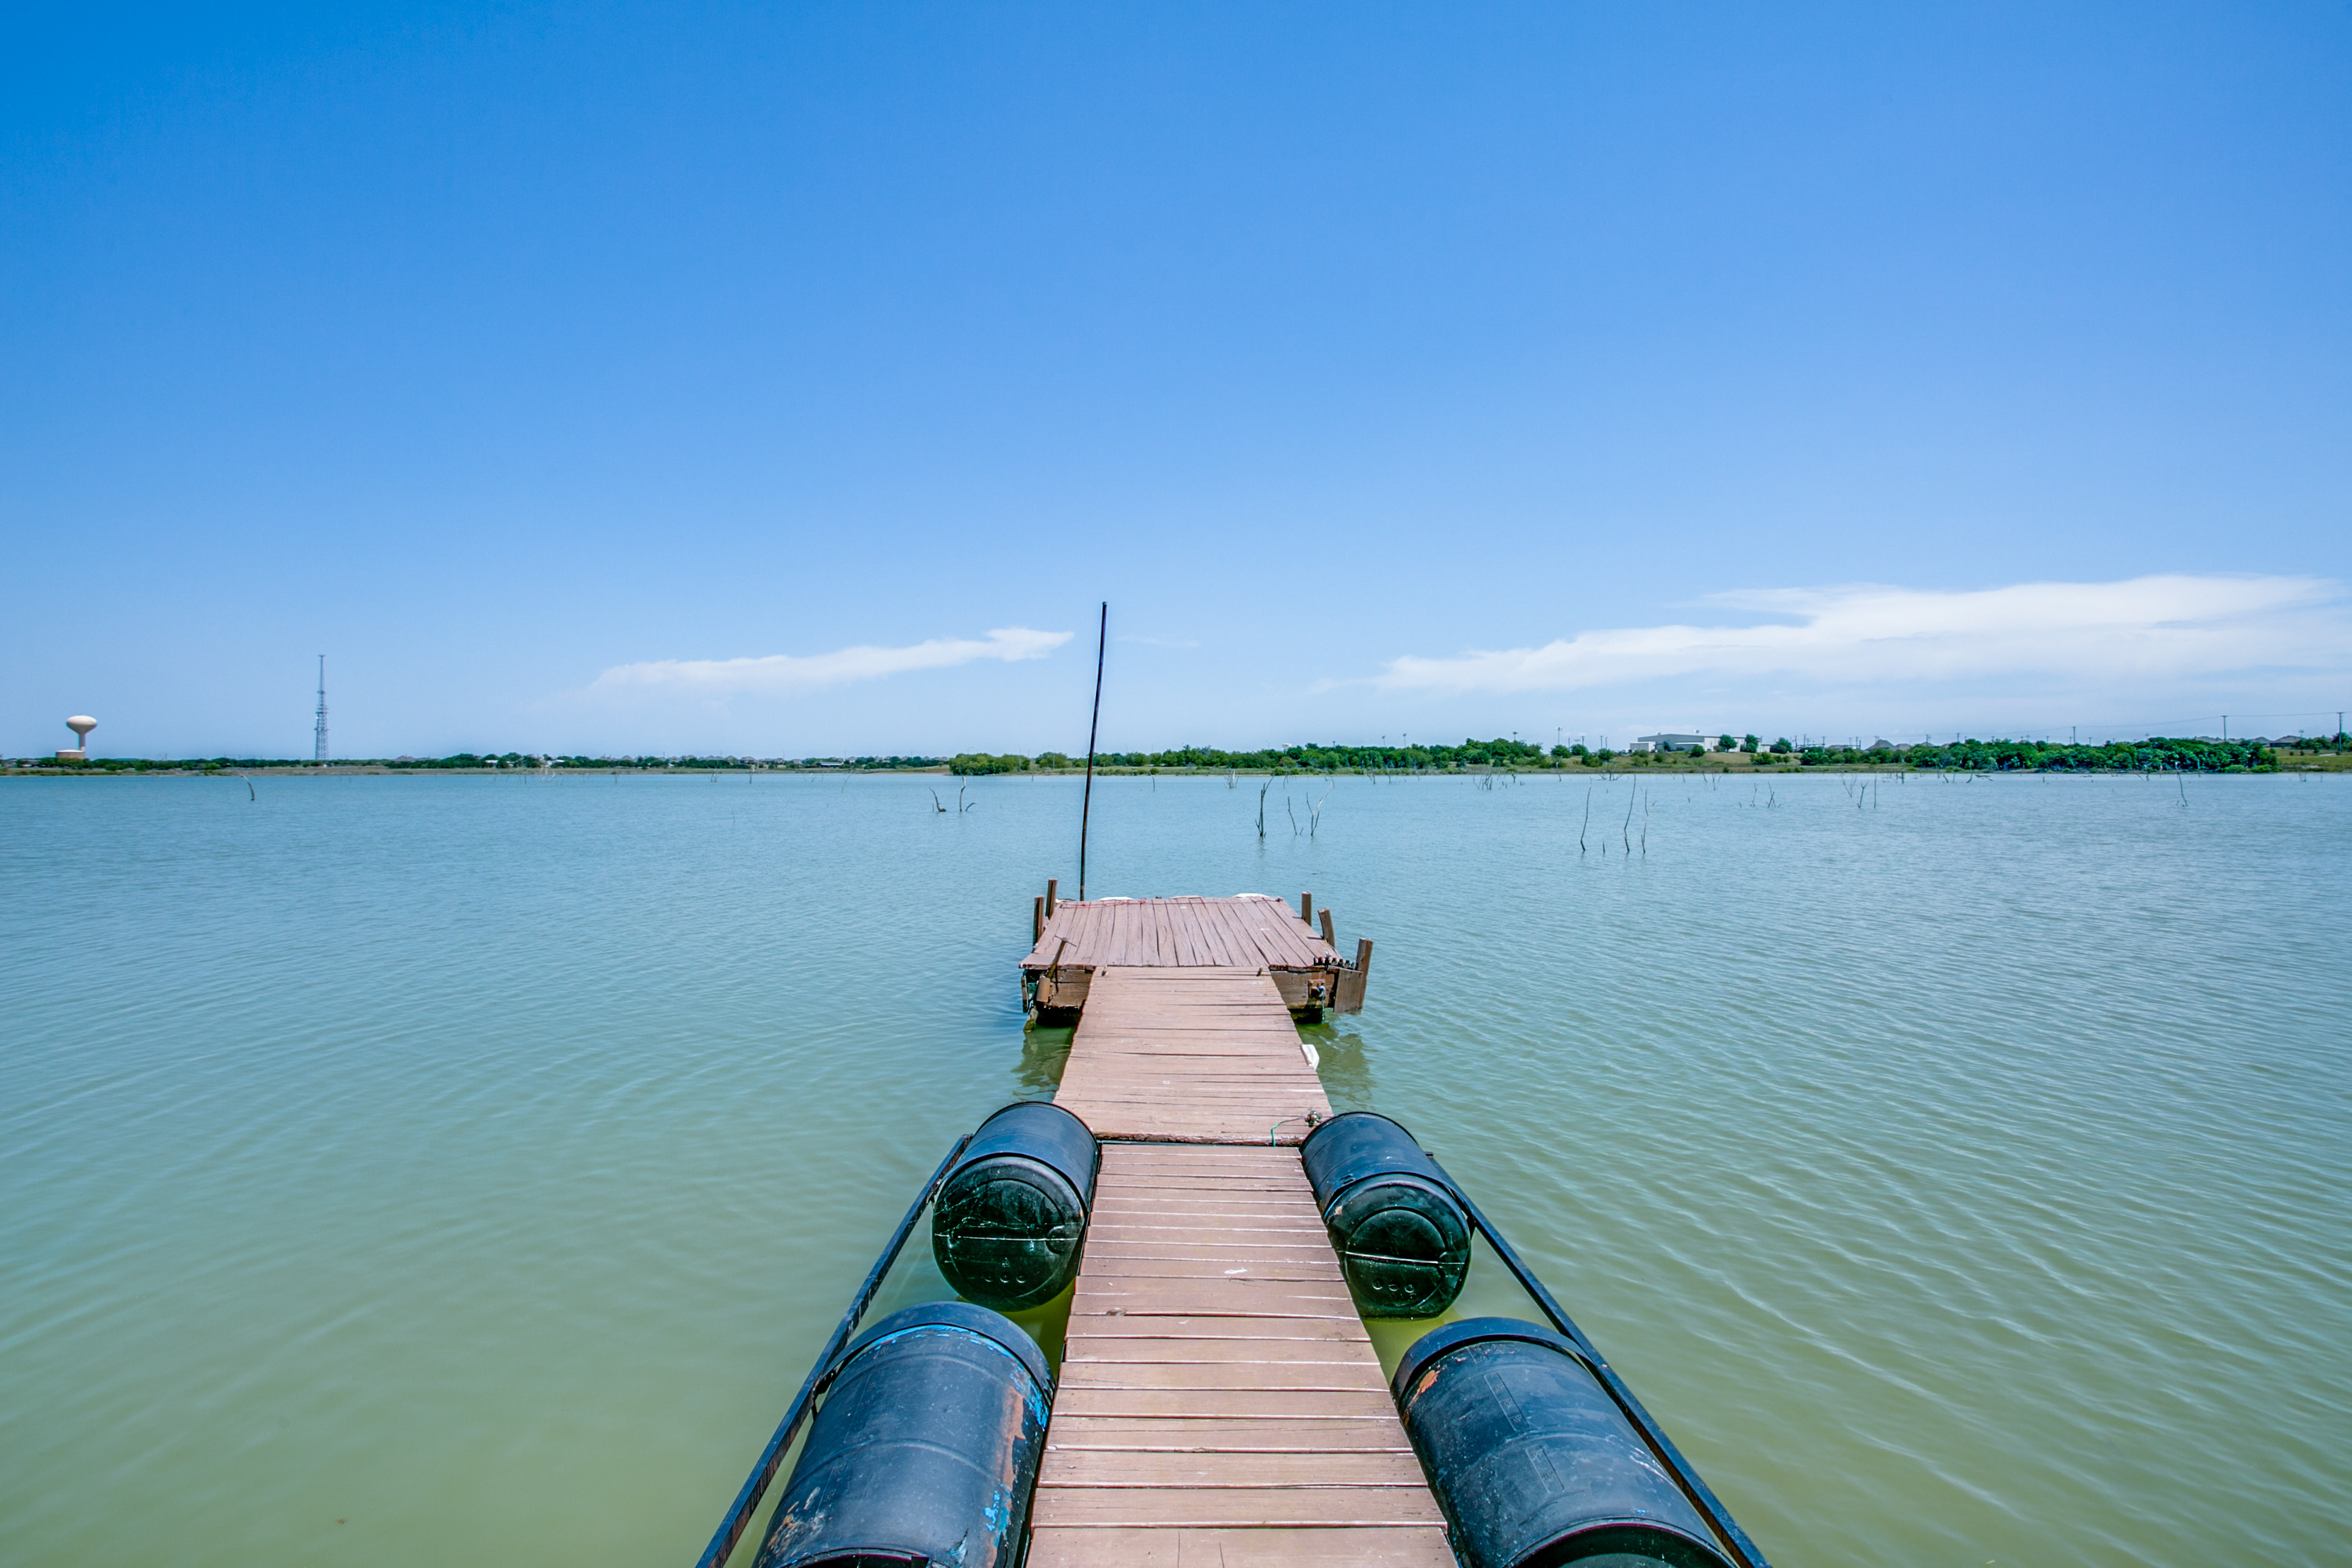 Dock your boat for lunch, catch fish as they're biting & do back flips off the dock!  Whether it's relaxing or fun you're after, enjoy from your own backyard!